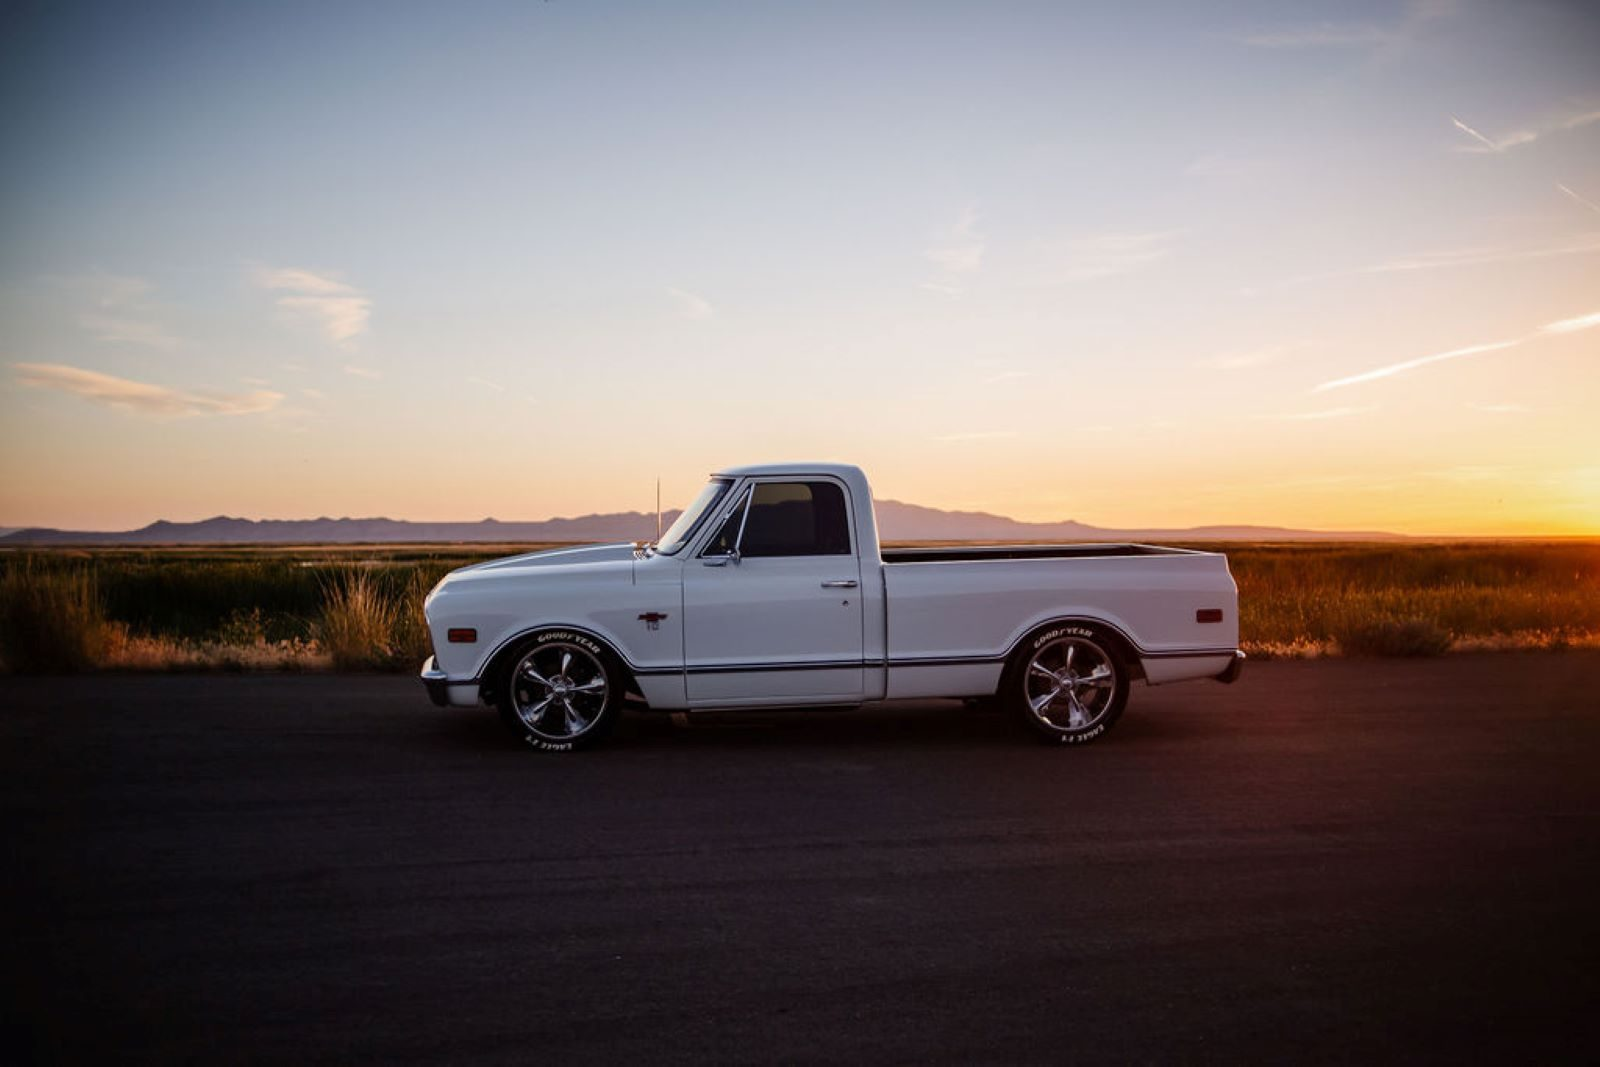 Marilyn the pickup truck